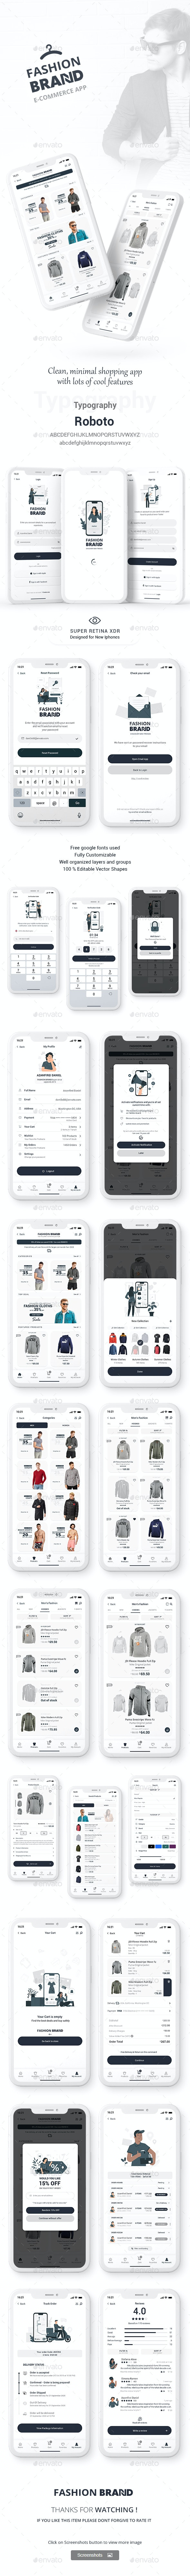 Brand Fashion - Ecommerce (Super Retina XDR Display) - User Interfaces Web Elements